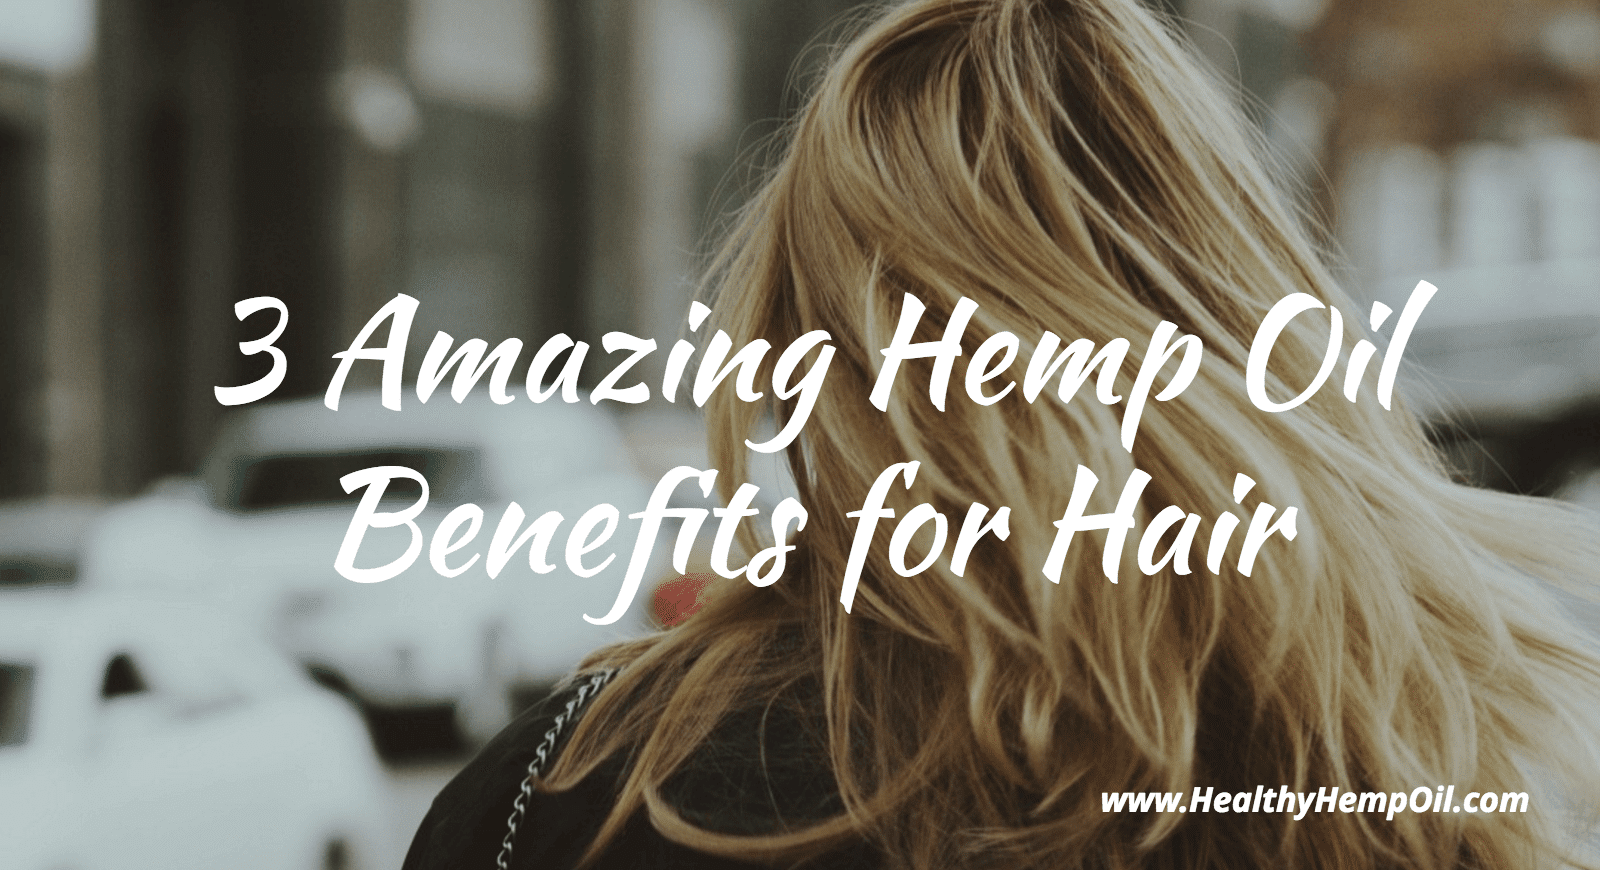 3 Amazing Hemp Oil Benefits for Hair